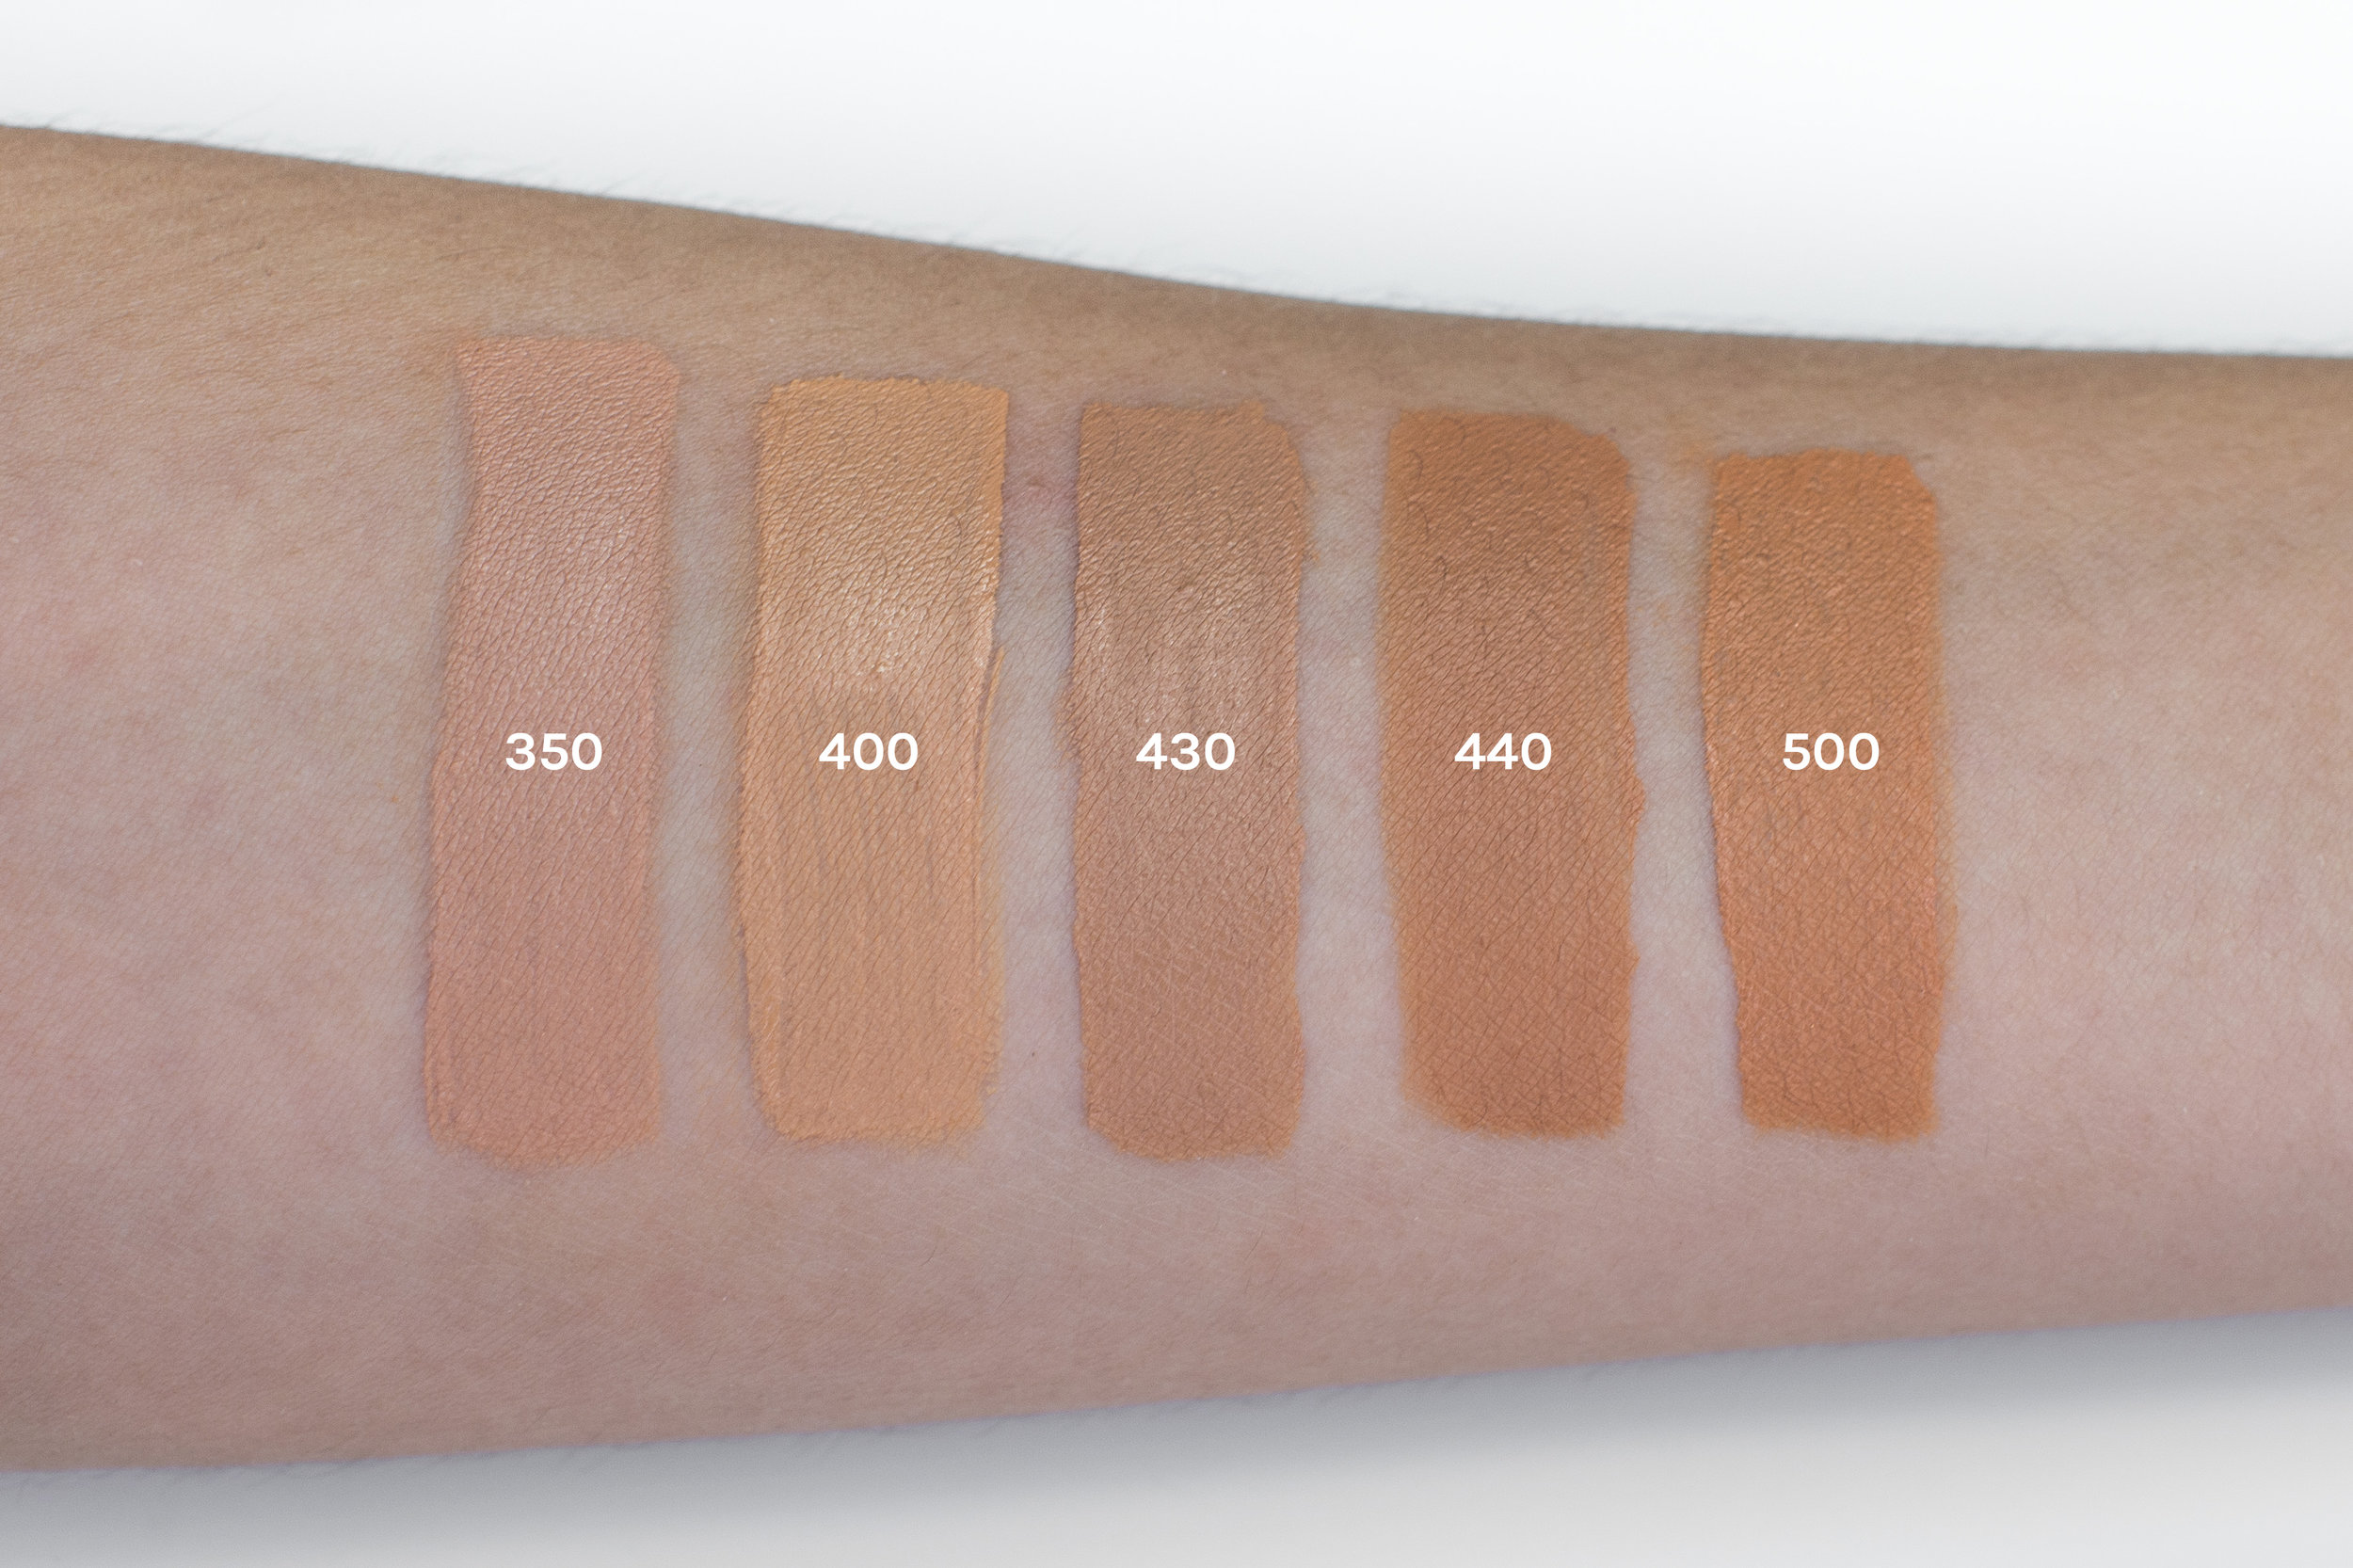 SWATCHES_revlon-candid-line_foundation-concealer-powder_review-philippines_2019-2.jpg